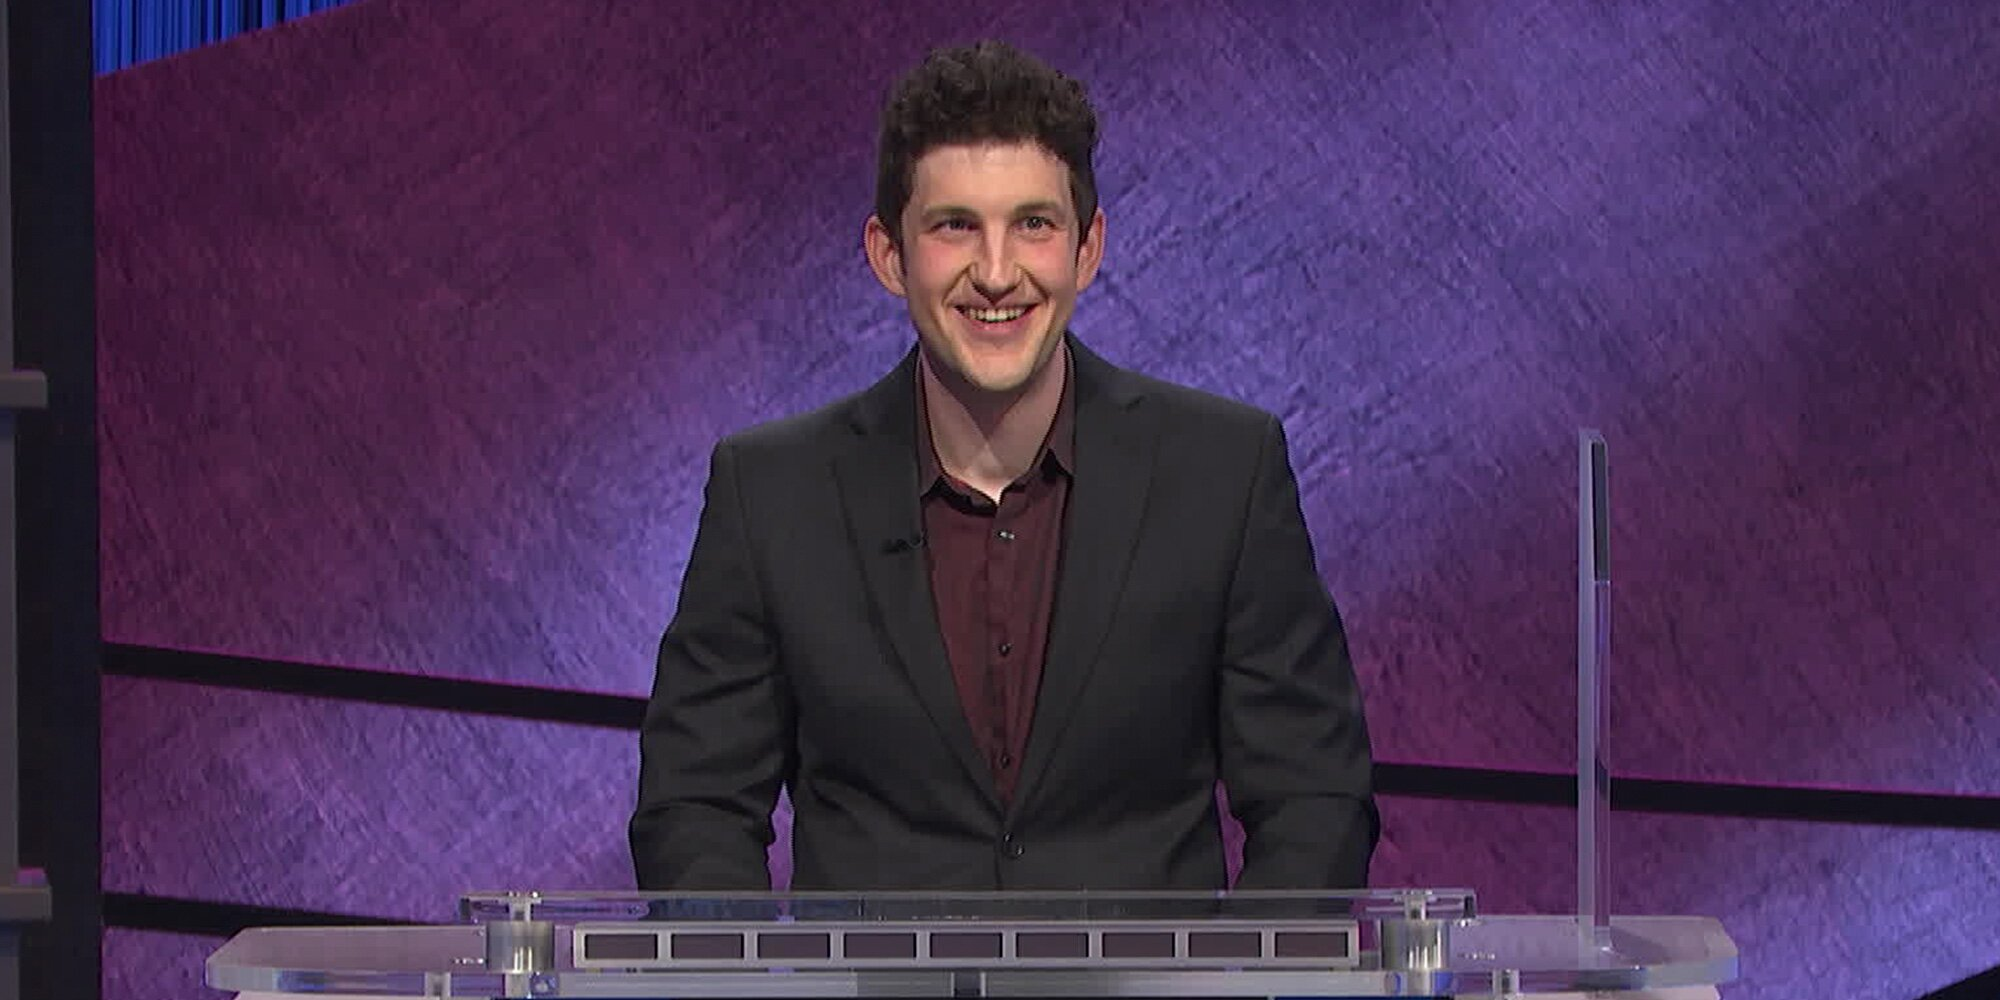 'Jeopardy' clarifies its rules after fans find contestant's answer style annoying